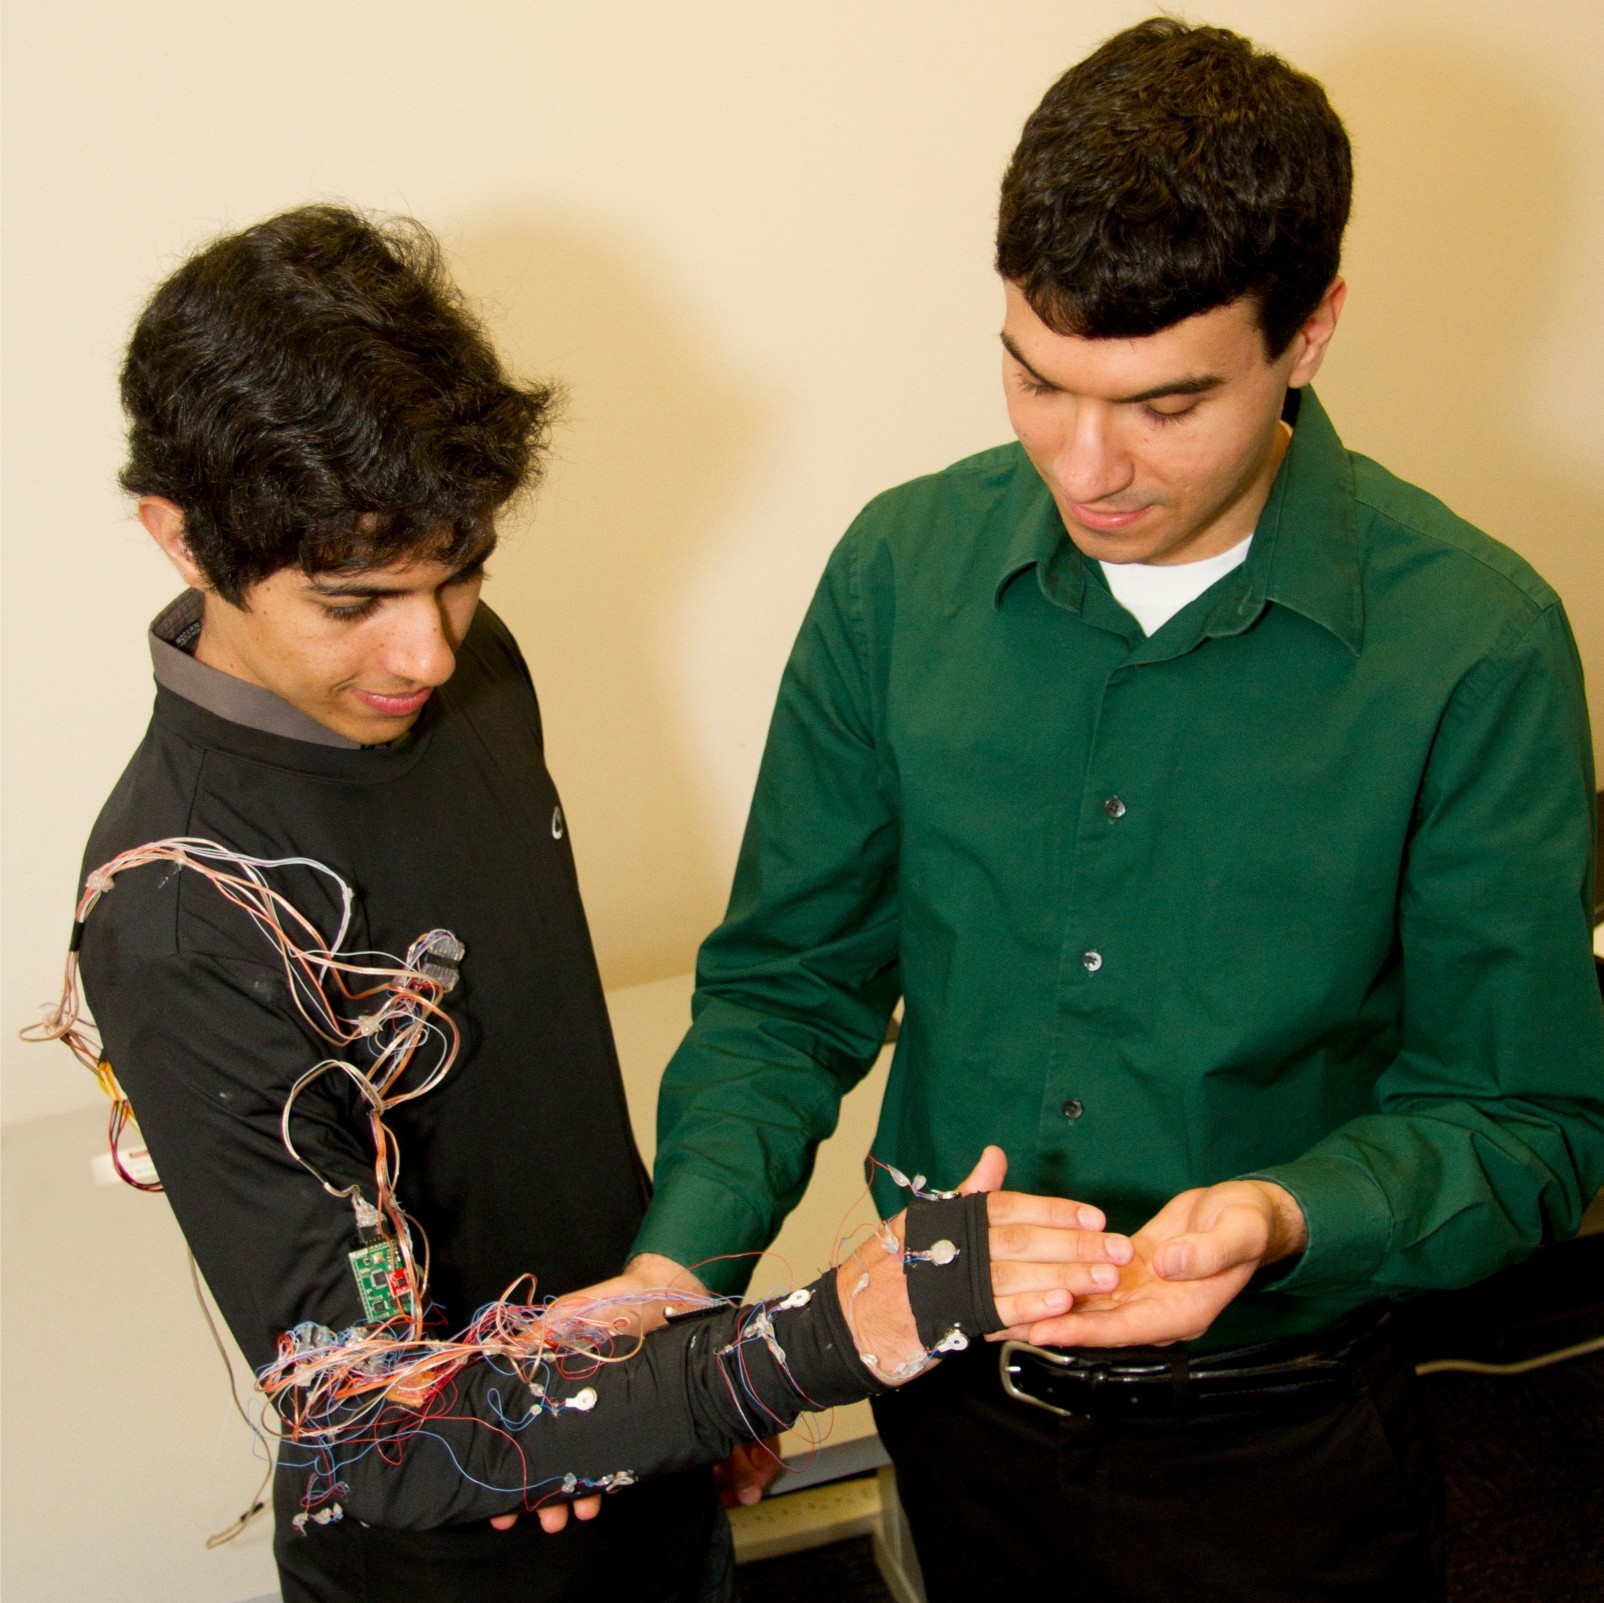 Vibrotactile-Based Motor Learning